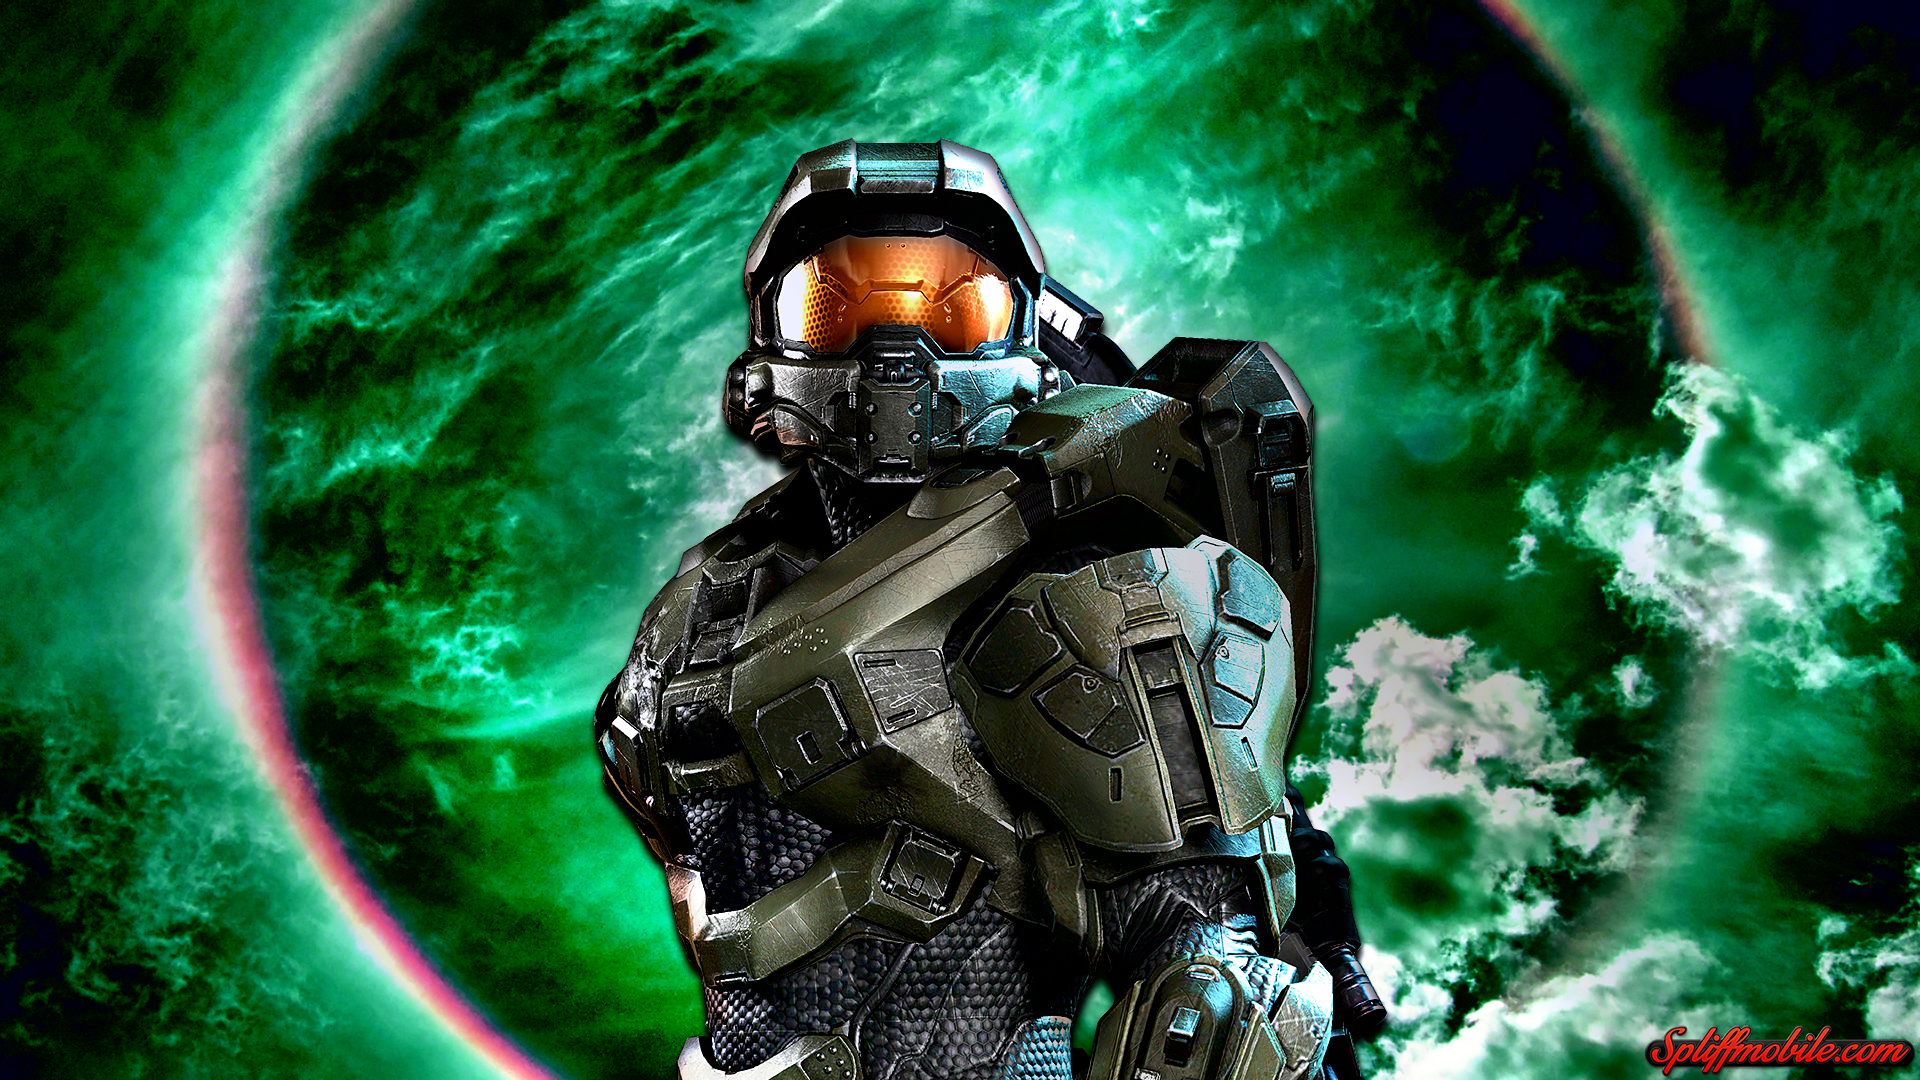 Free Download Hd Halo Master Chief Wallpaper 1920x1080 For Your